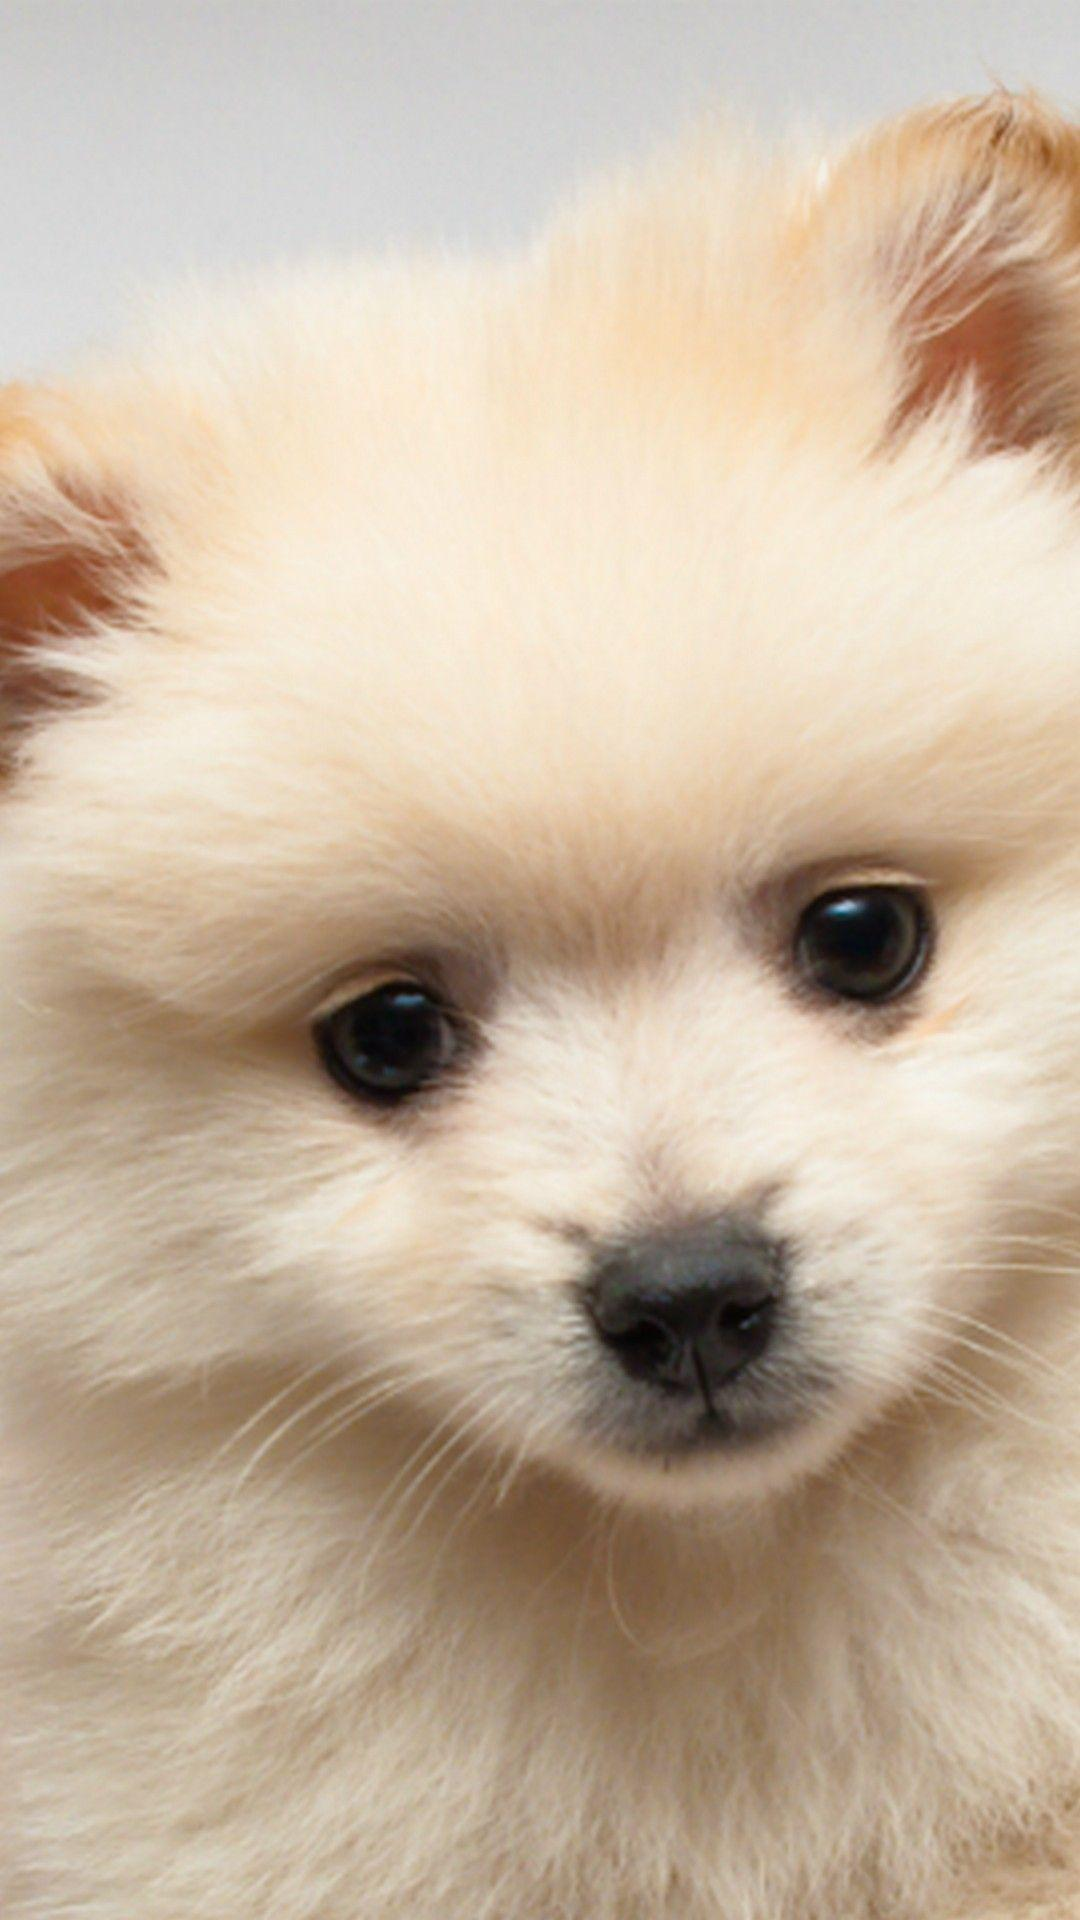 Puppy Phone Wallpapers Wallpaper Cave